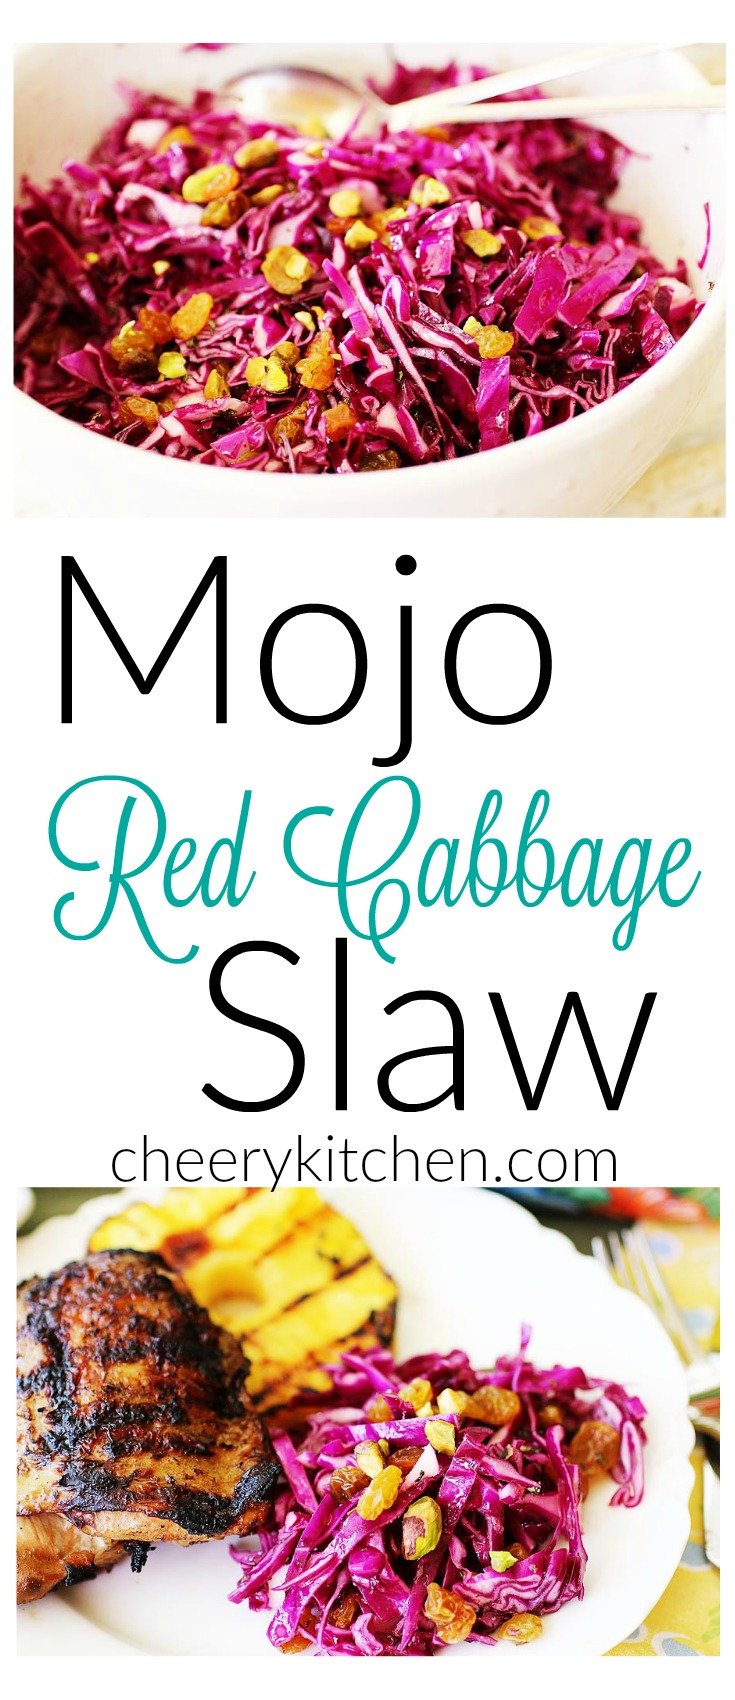 Fresh, citrusy, crunchy, healthy, and colorful, Mojo Red Cabbage Slaw is a great side dish for all of your summer parties and picnics.